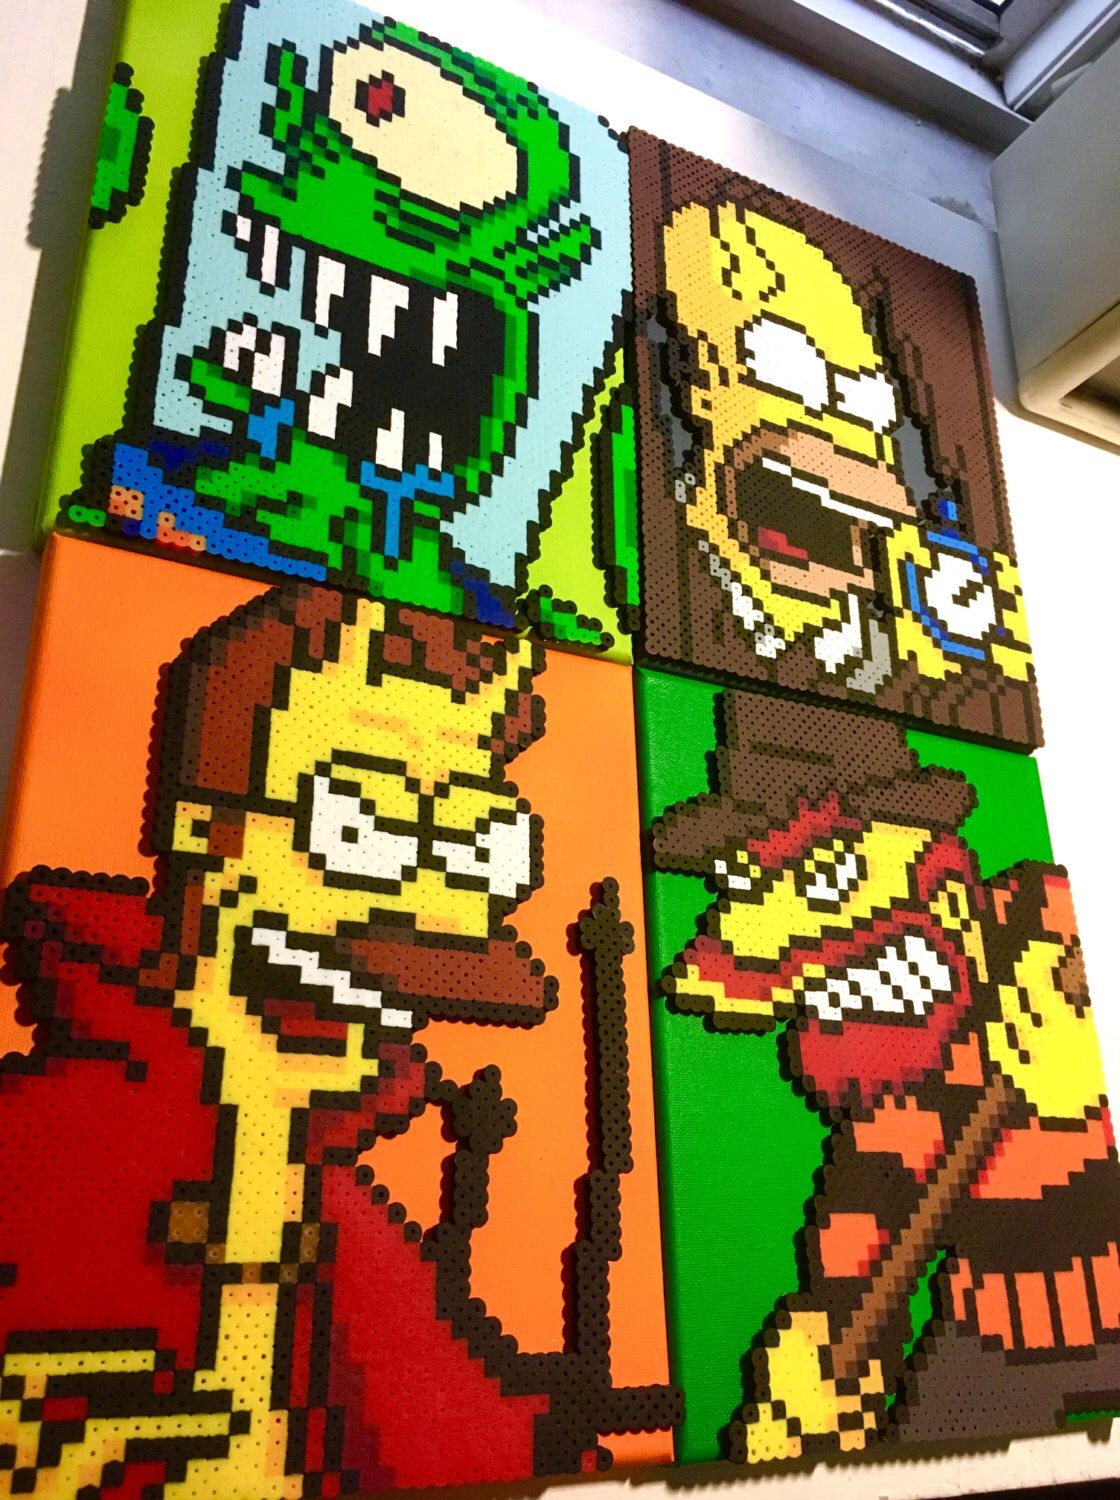 Simpsons Halloween Pixel Patterns - Cross Stitch - Perler Beads ...